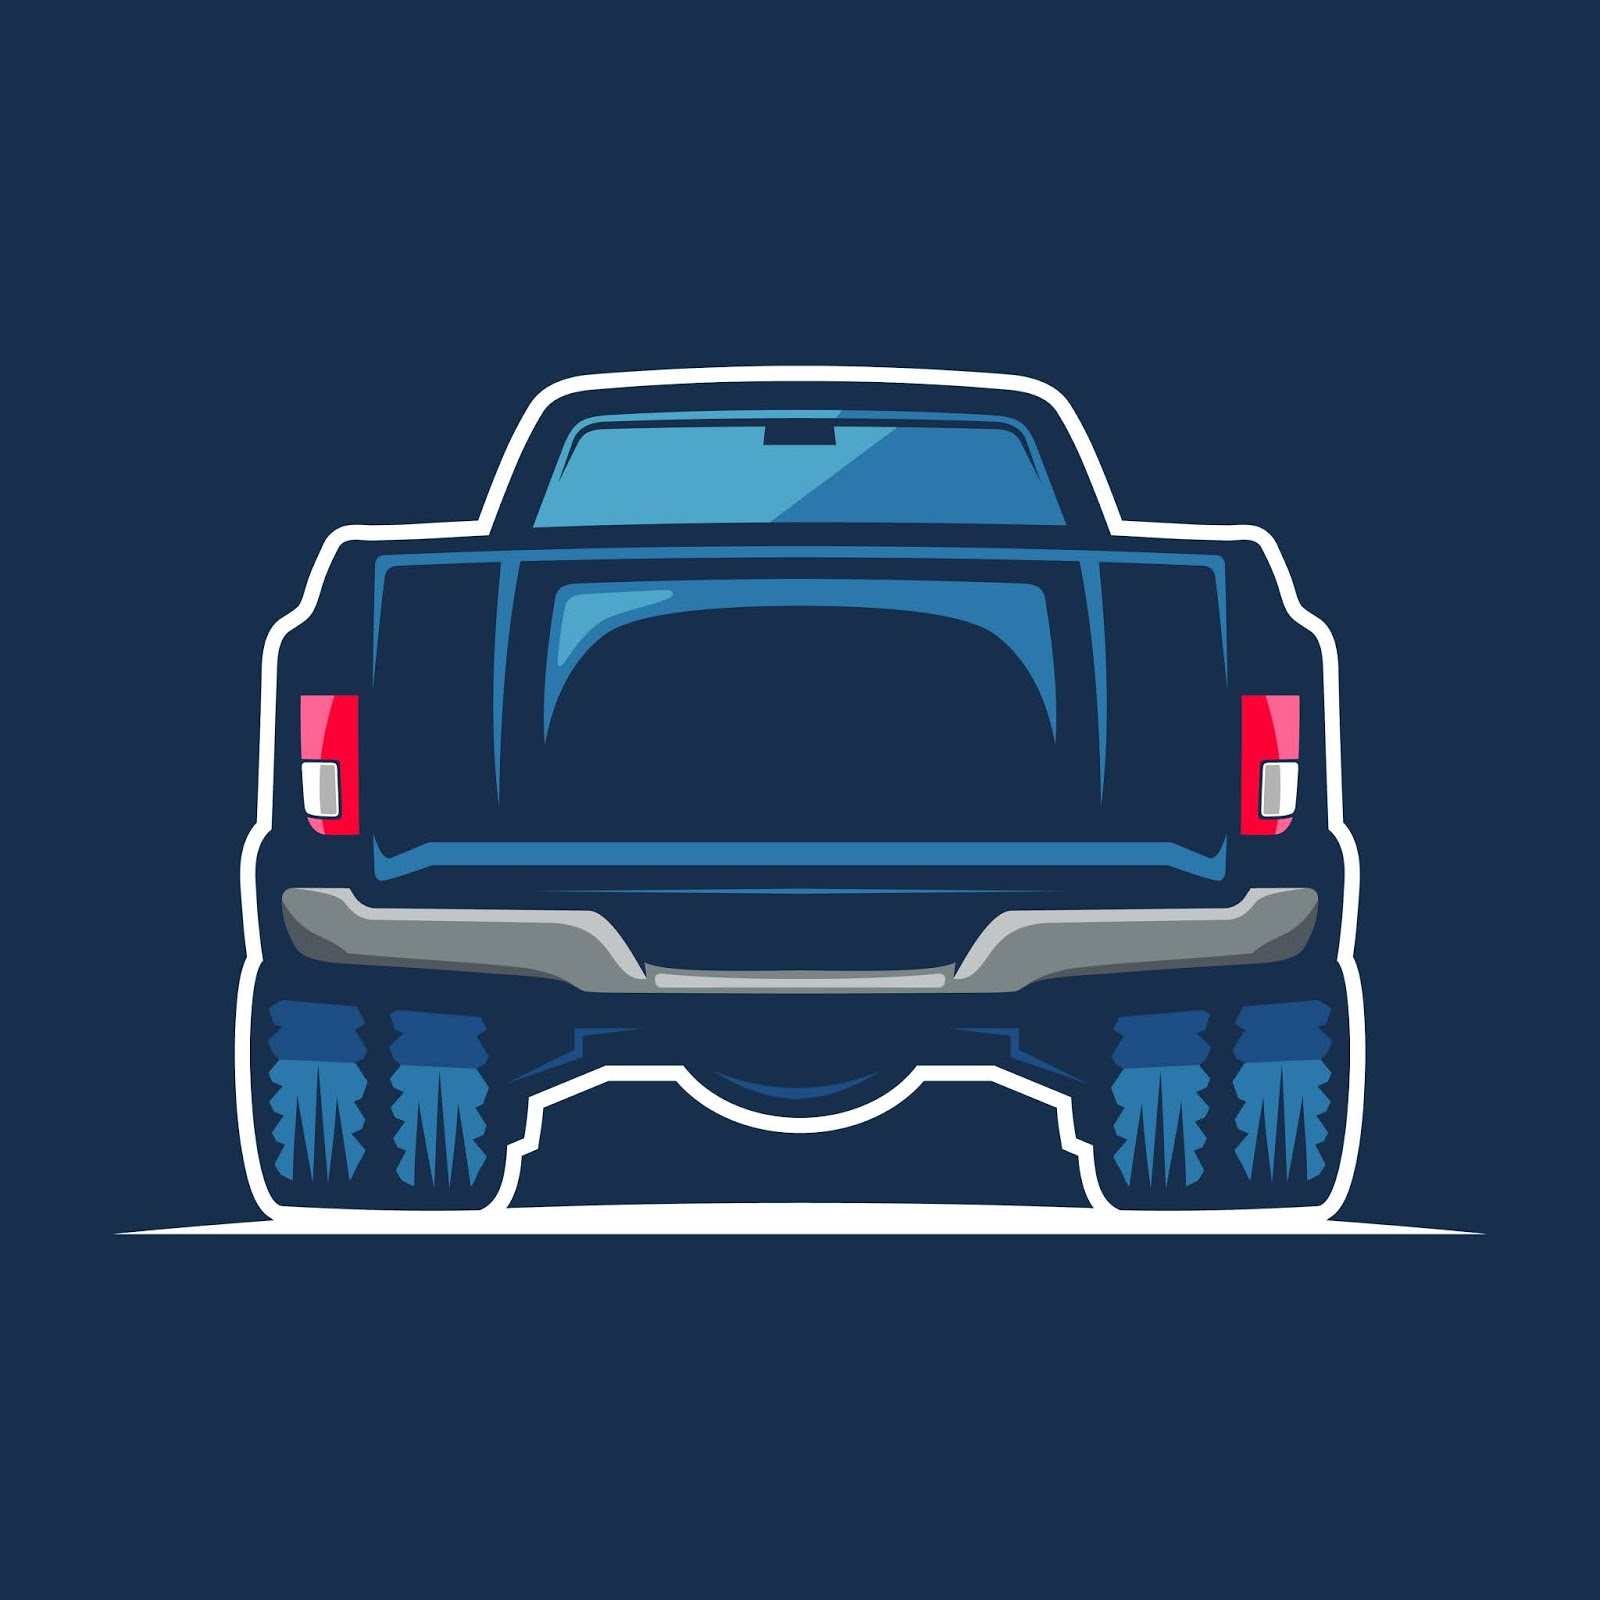 Blue Car Illustration Free Download Vector CDR, AI, EPS and PNG Formats